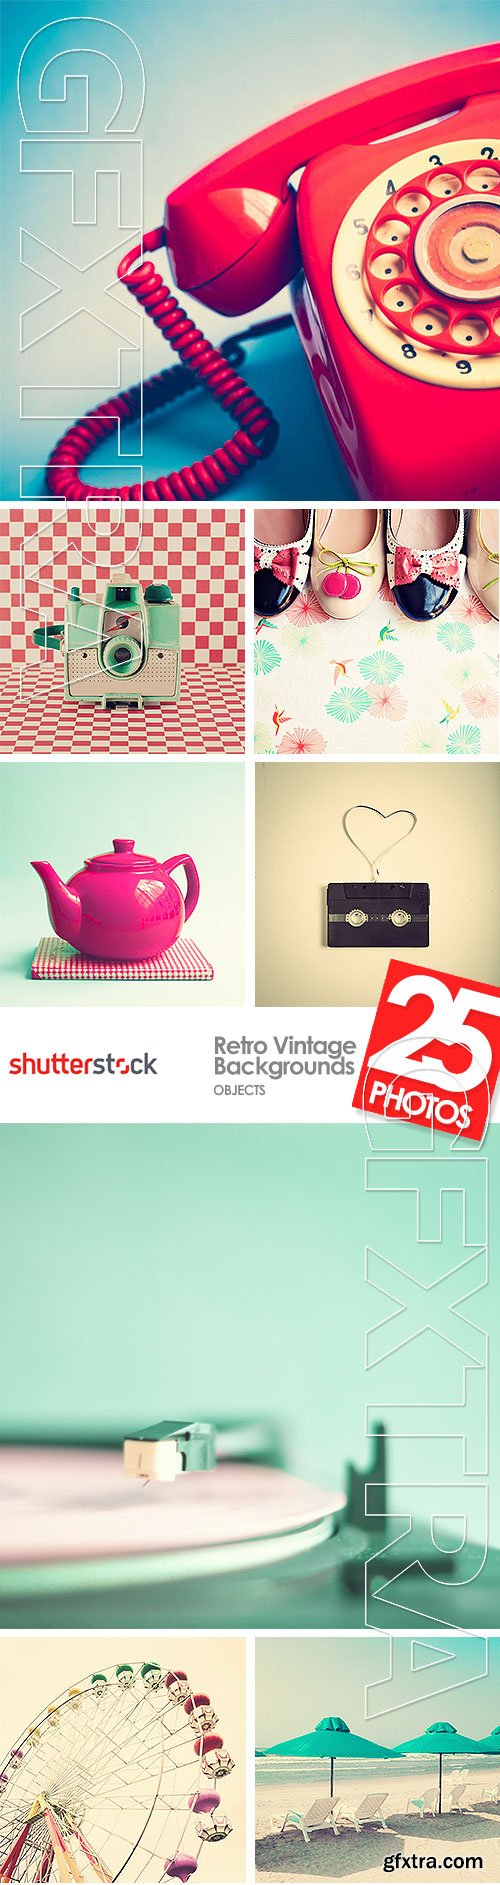 Retro Vintage Backgrounds - Objects 25xJPG